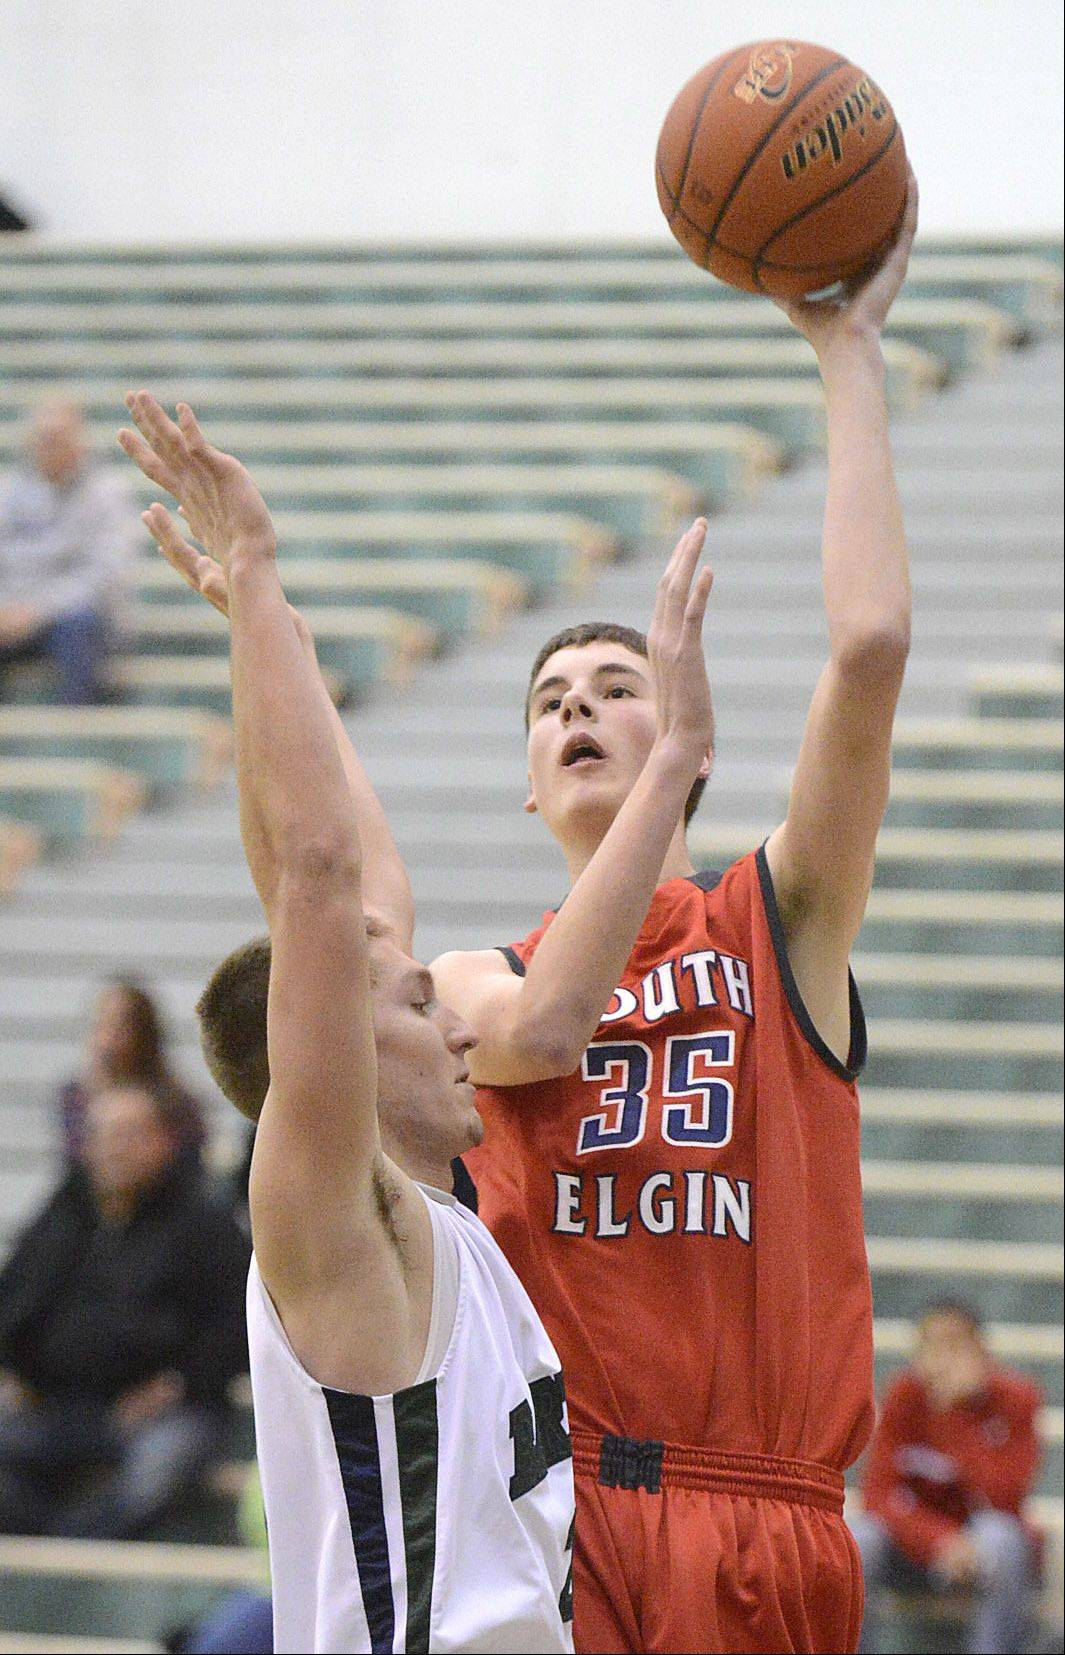 South Elgin's Tyler Hankins shoots over a block by Bartlett's Brian Triphahn in the third quarter.